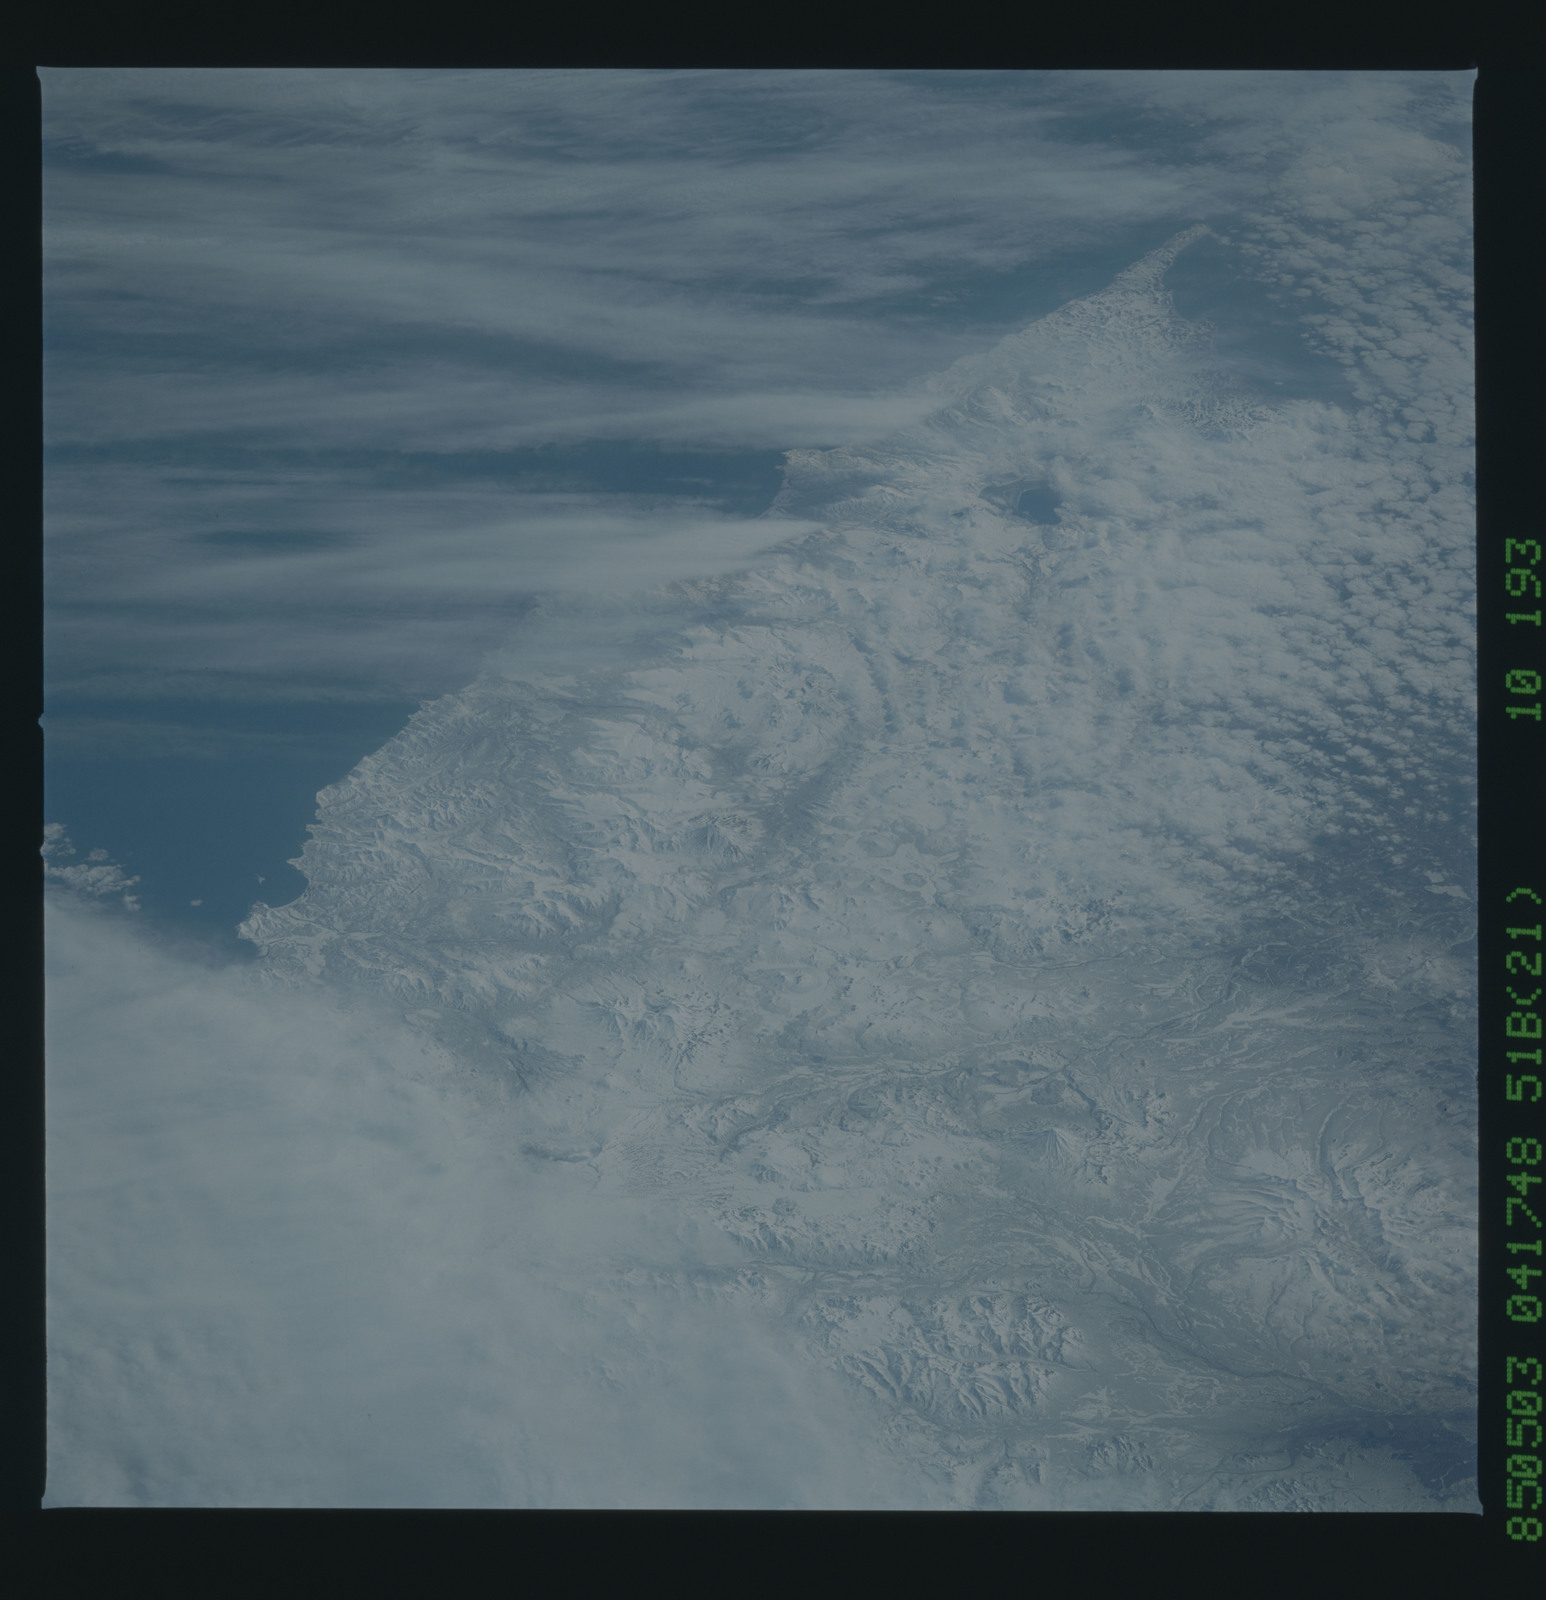 51B-52-091 - STS-51B - STS-51B earth observation